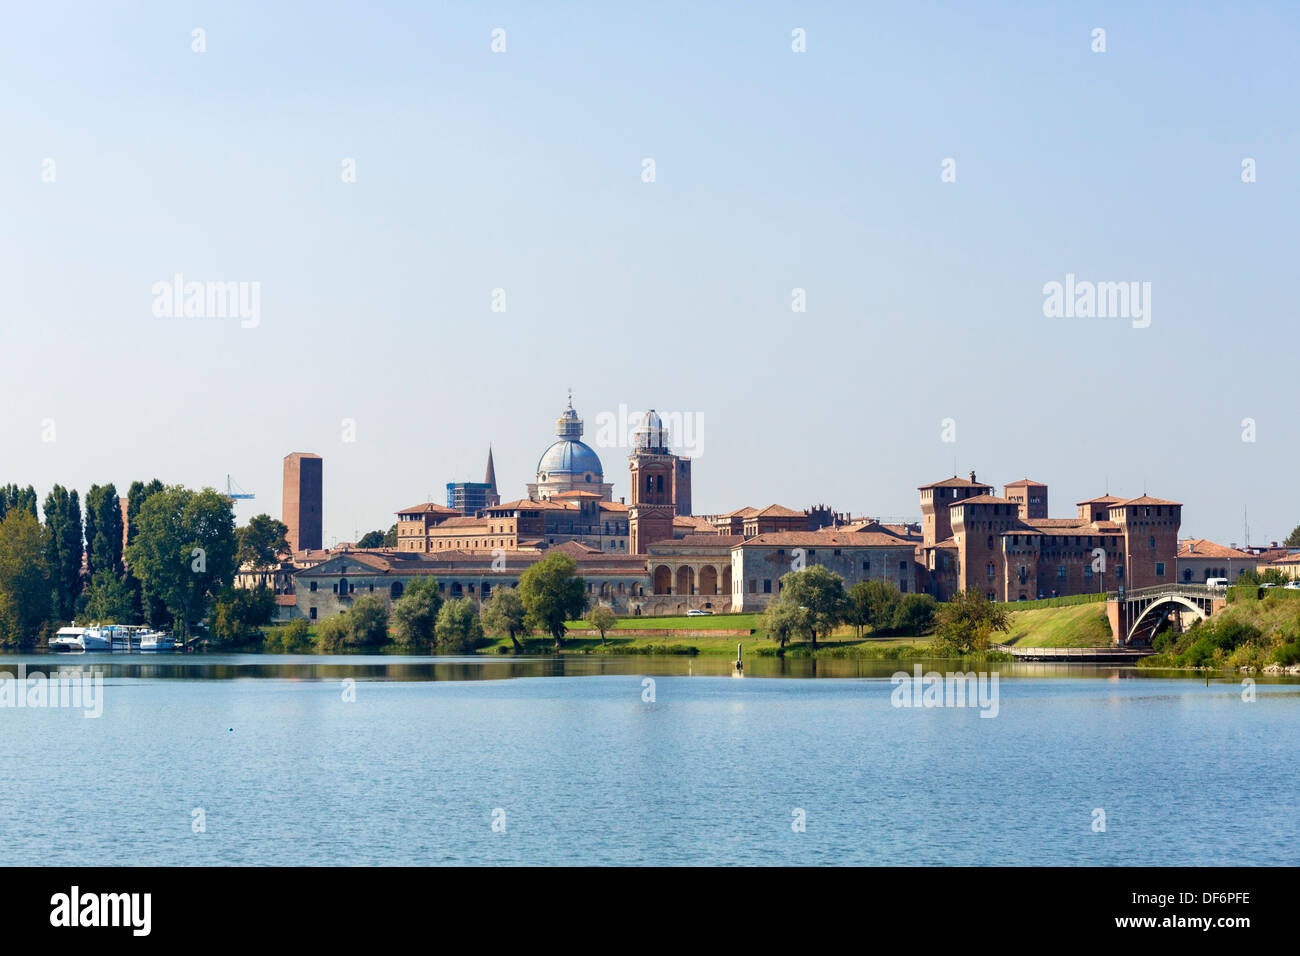 Skyline of the city of Mantua, Lombardy, Italy - Stock Image